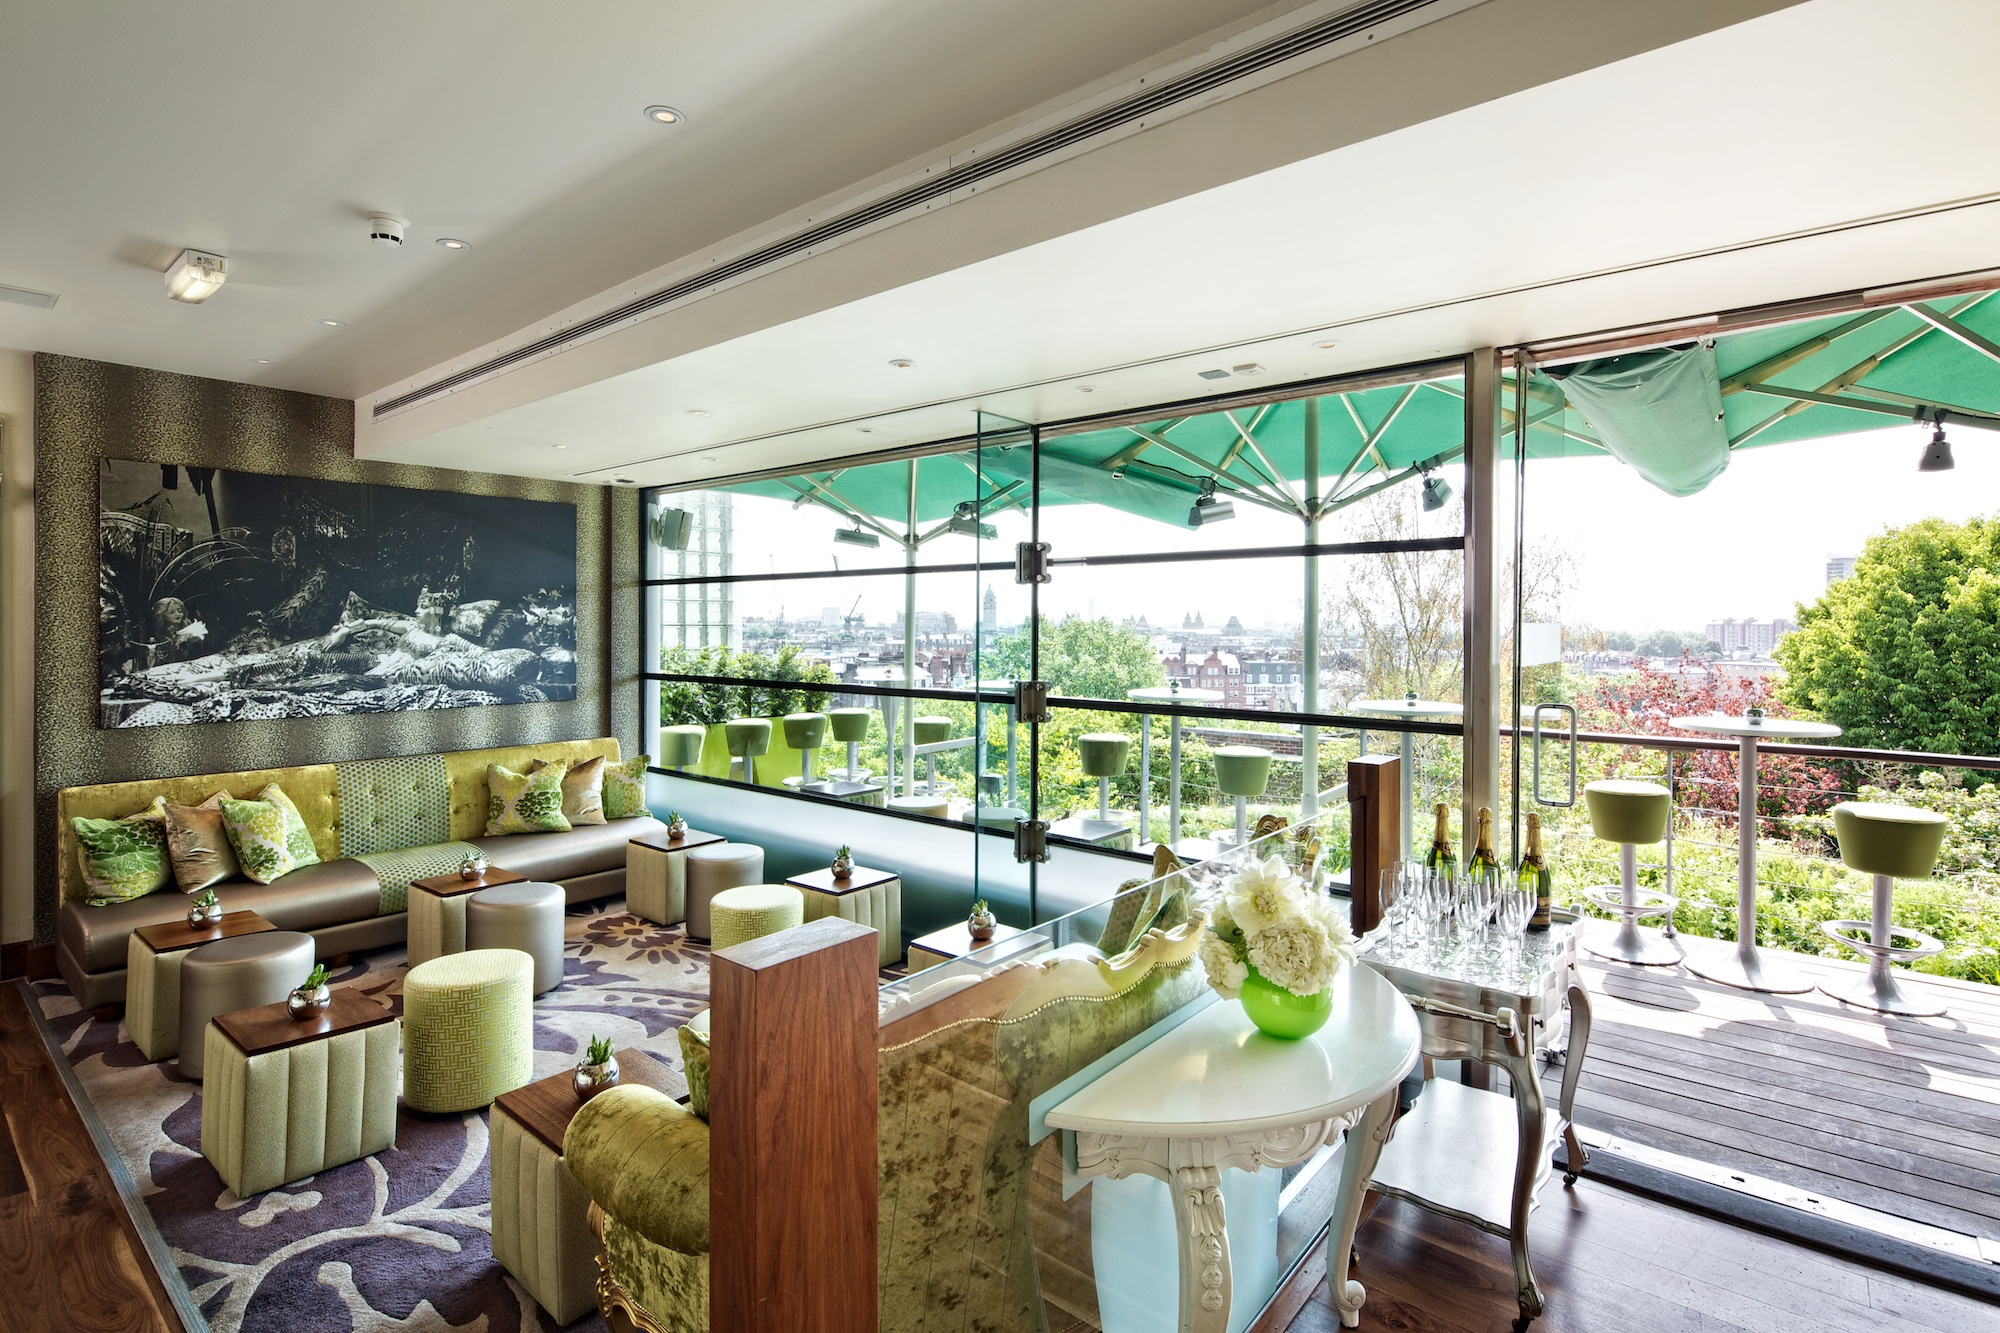 Roof Gardens Pictures babylon at the roof gardens - kensington, london | bookatable